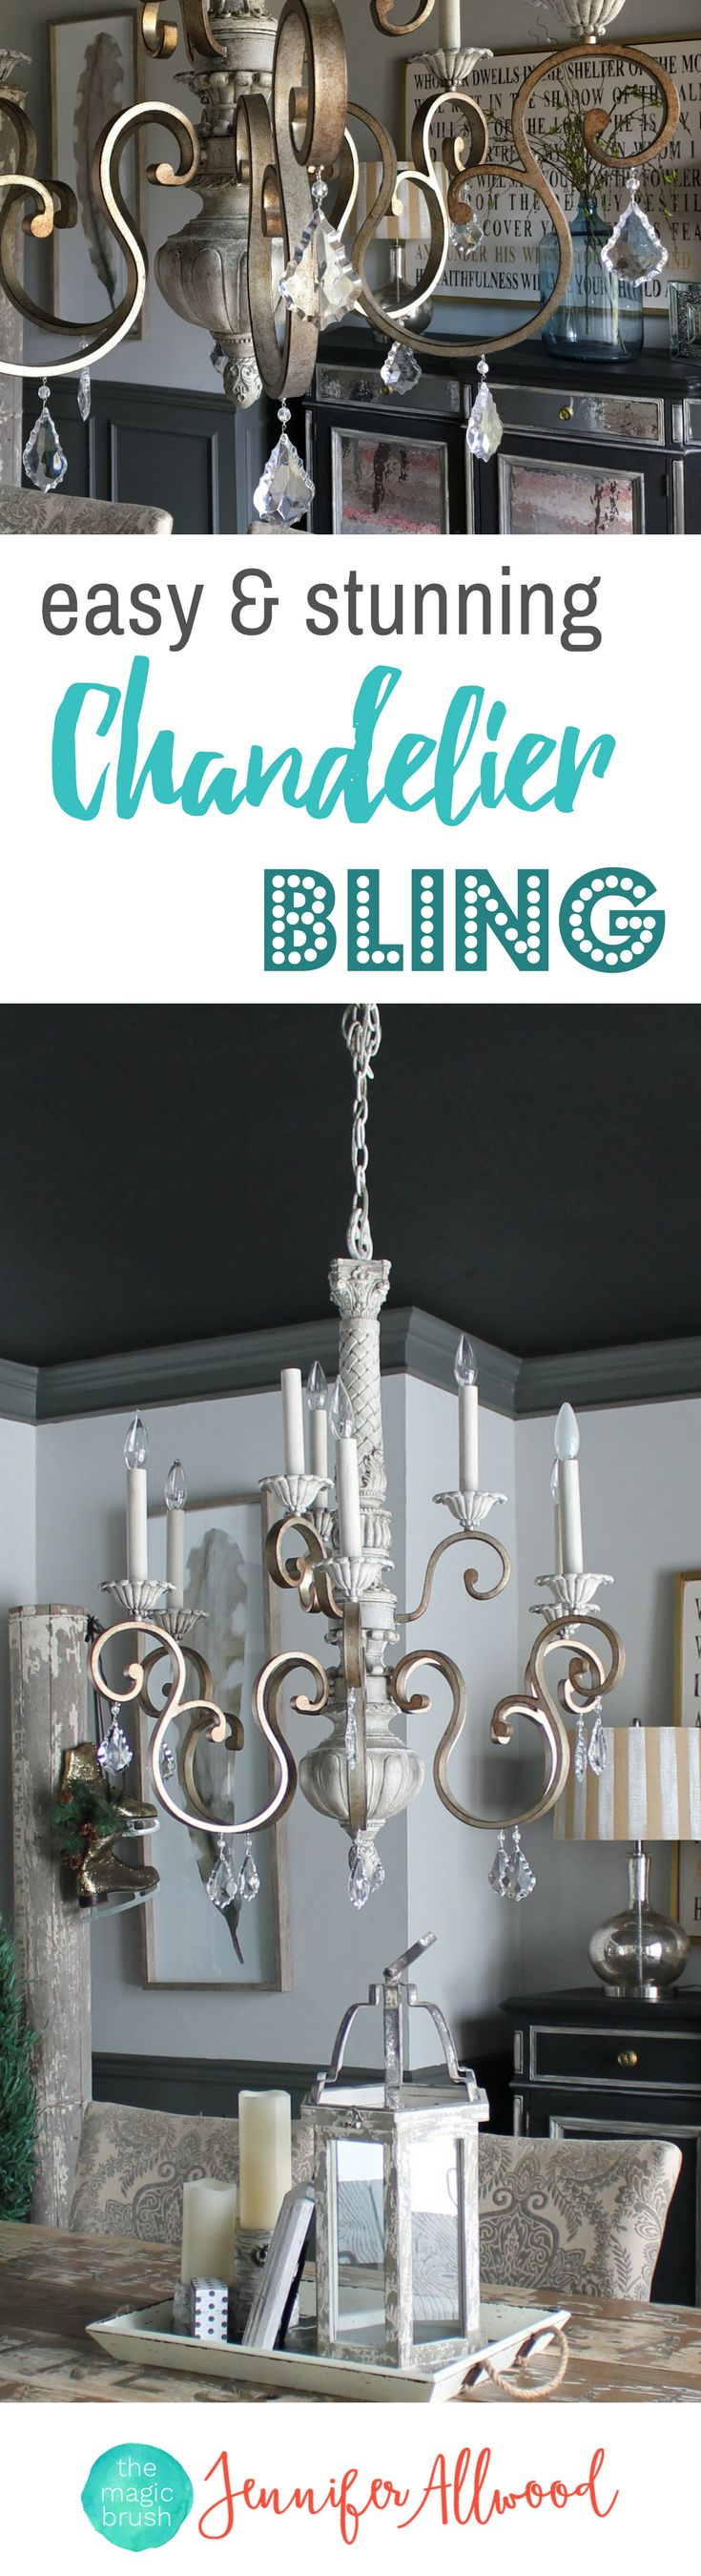 Best 25 painted chandelier ideas on pinterest brass chandelier best 25 painted chandelier ideas on pinterest brass chandelier makeover paint chandelier and annie chalk paint arubaitofo Image collections